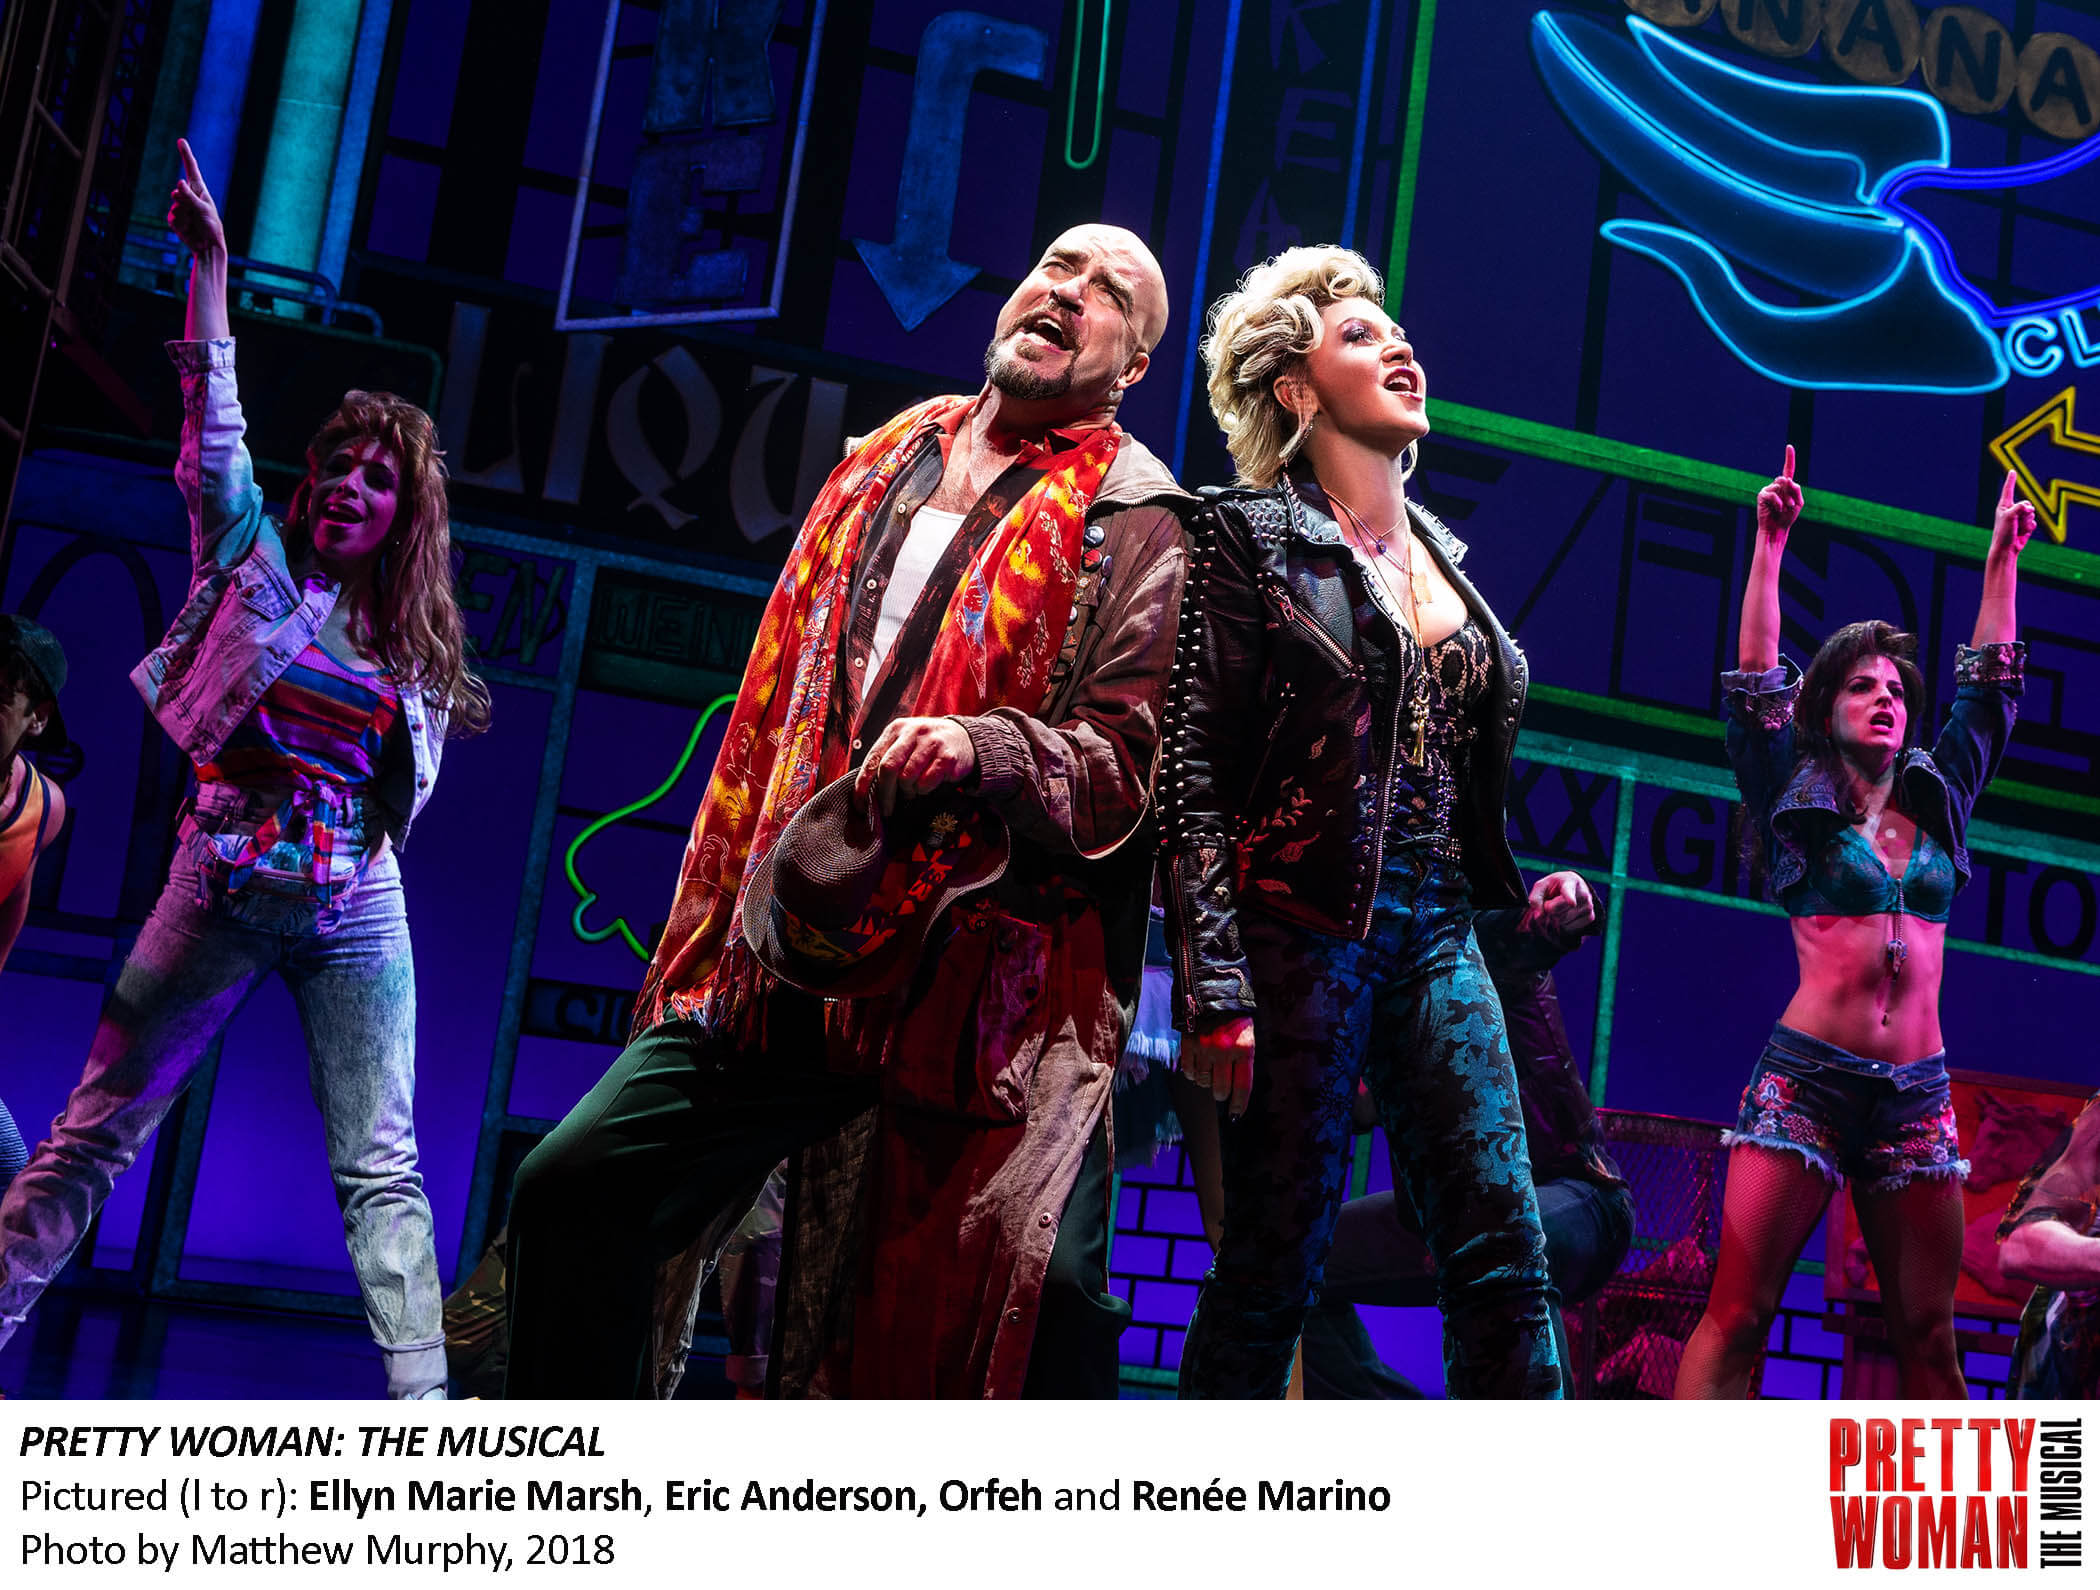 The beloved movie is on Broadway with Pretty Woman: The Musical featuring a beautiful score, a strong mesage and a solid cast.